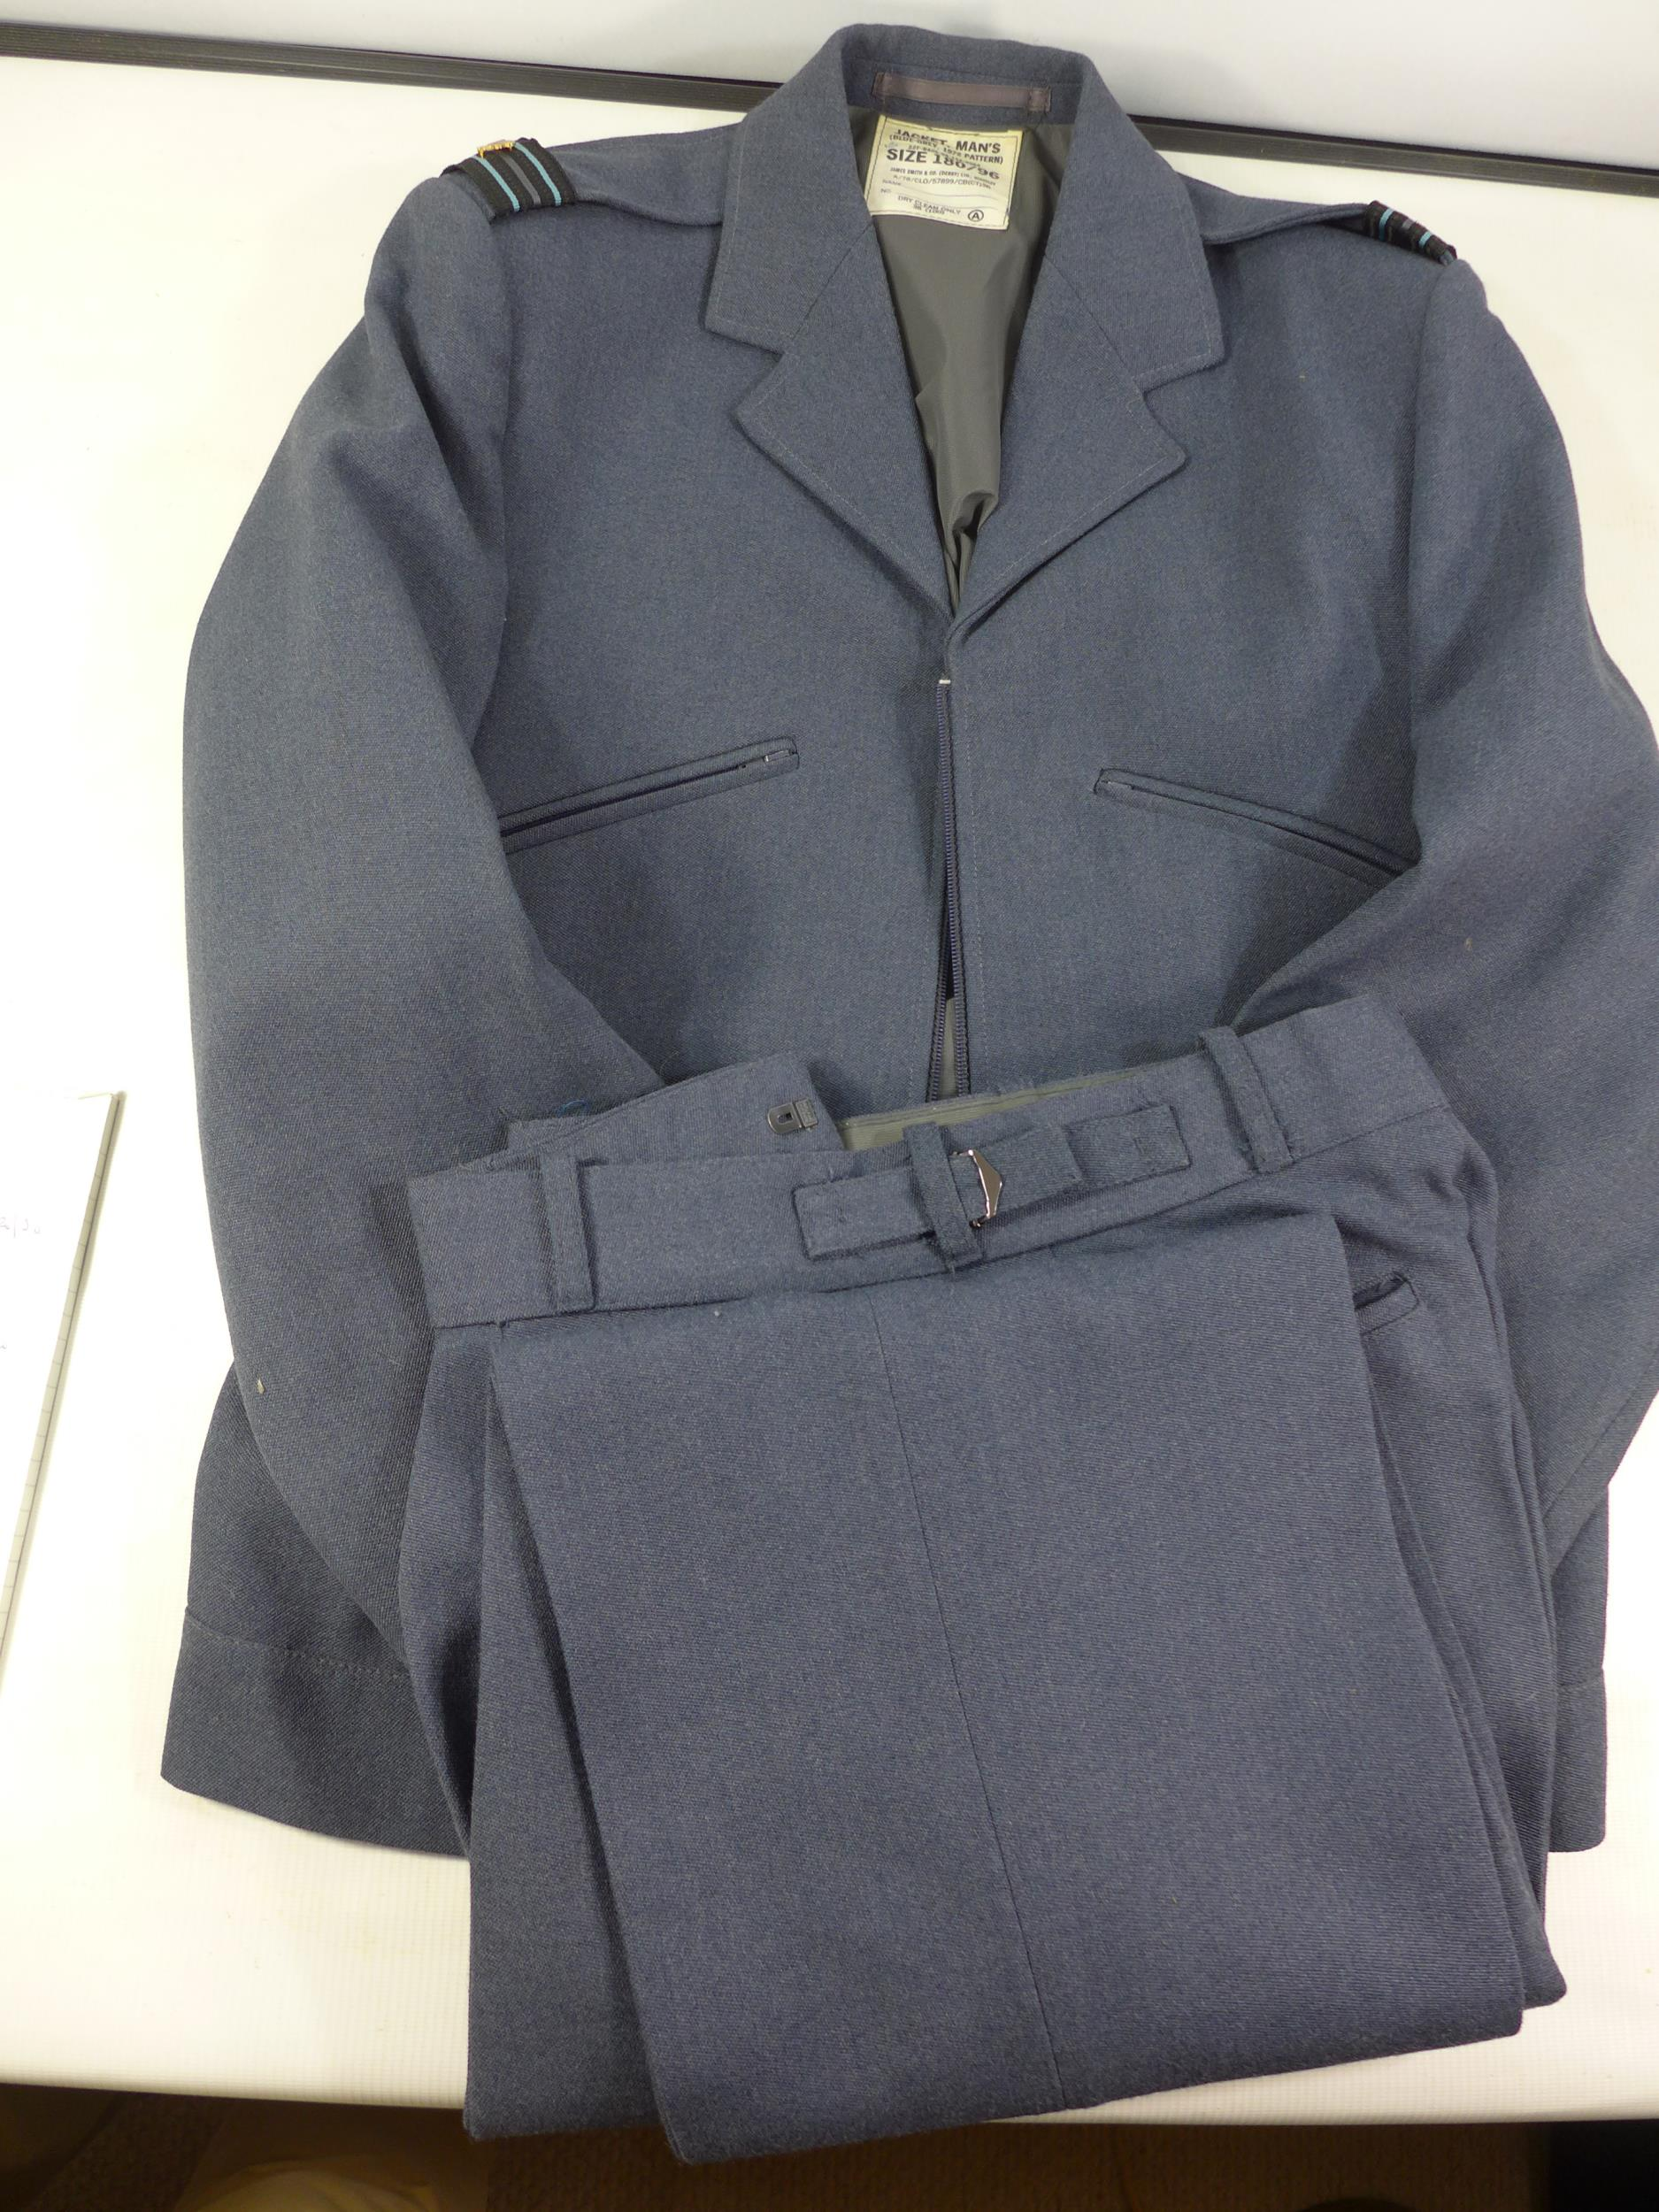 A RAF 1972 PATTERN UNIFORM COMPRISING OF A JACKET AND TROUSERS, SIZE 180/96